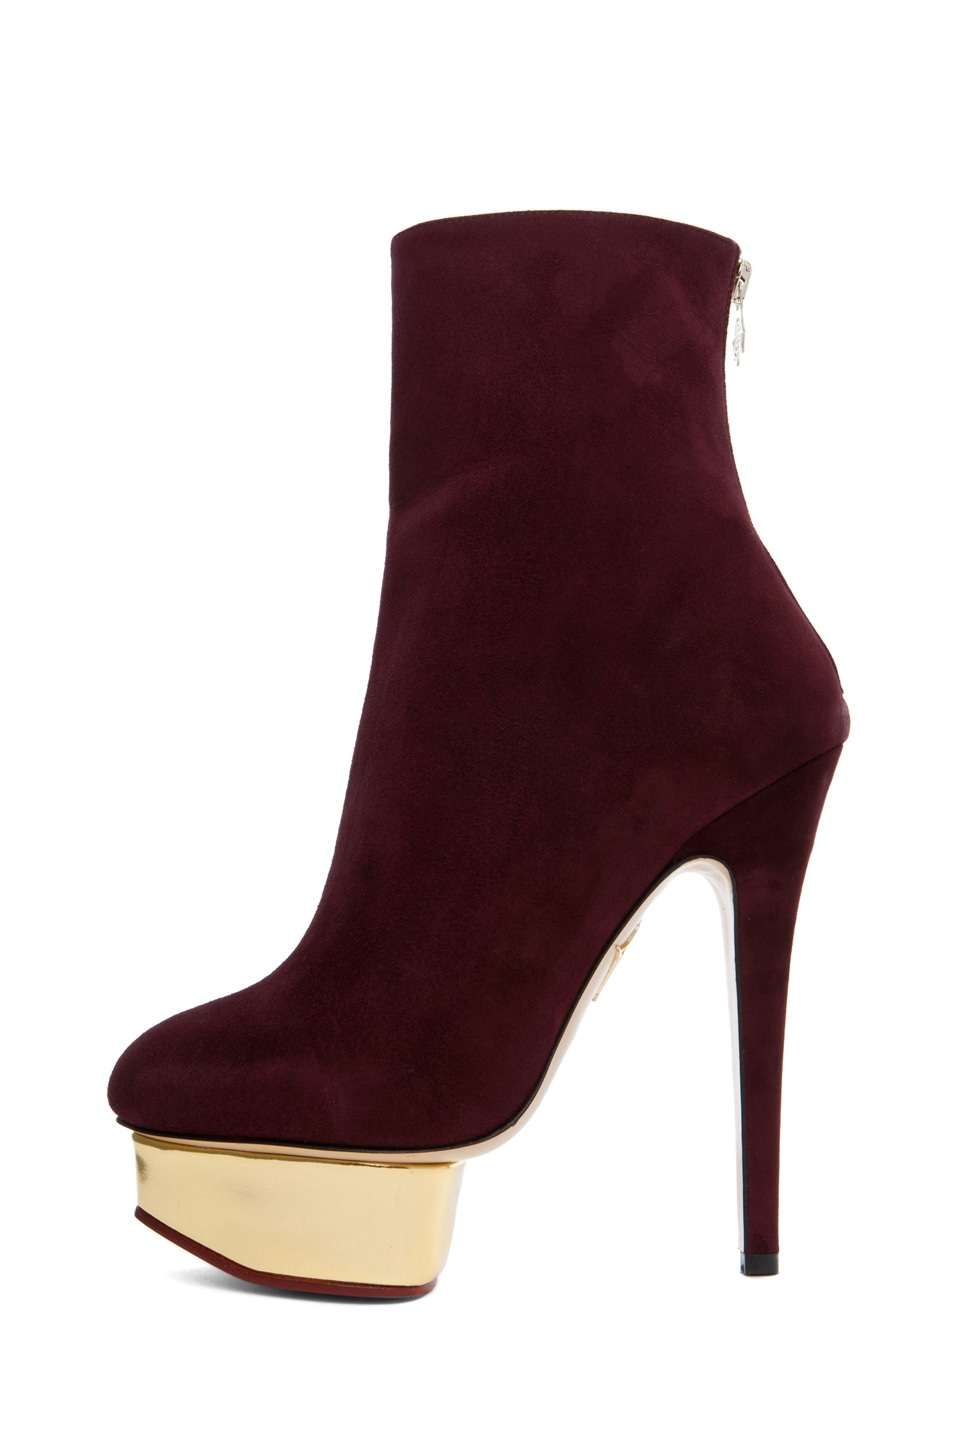 Image 1 of Charlotte Olympia Lucinda Ankle Boot in Aubergine